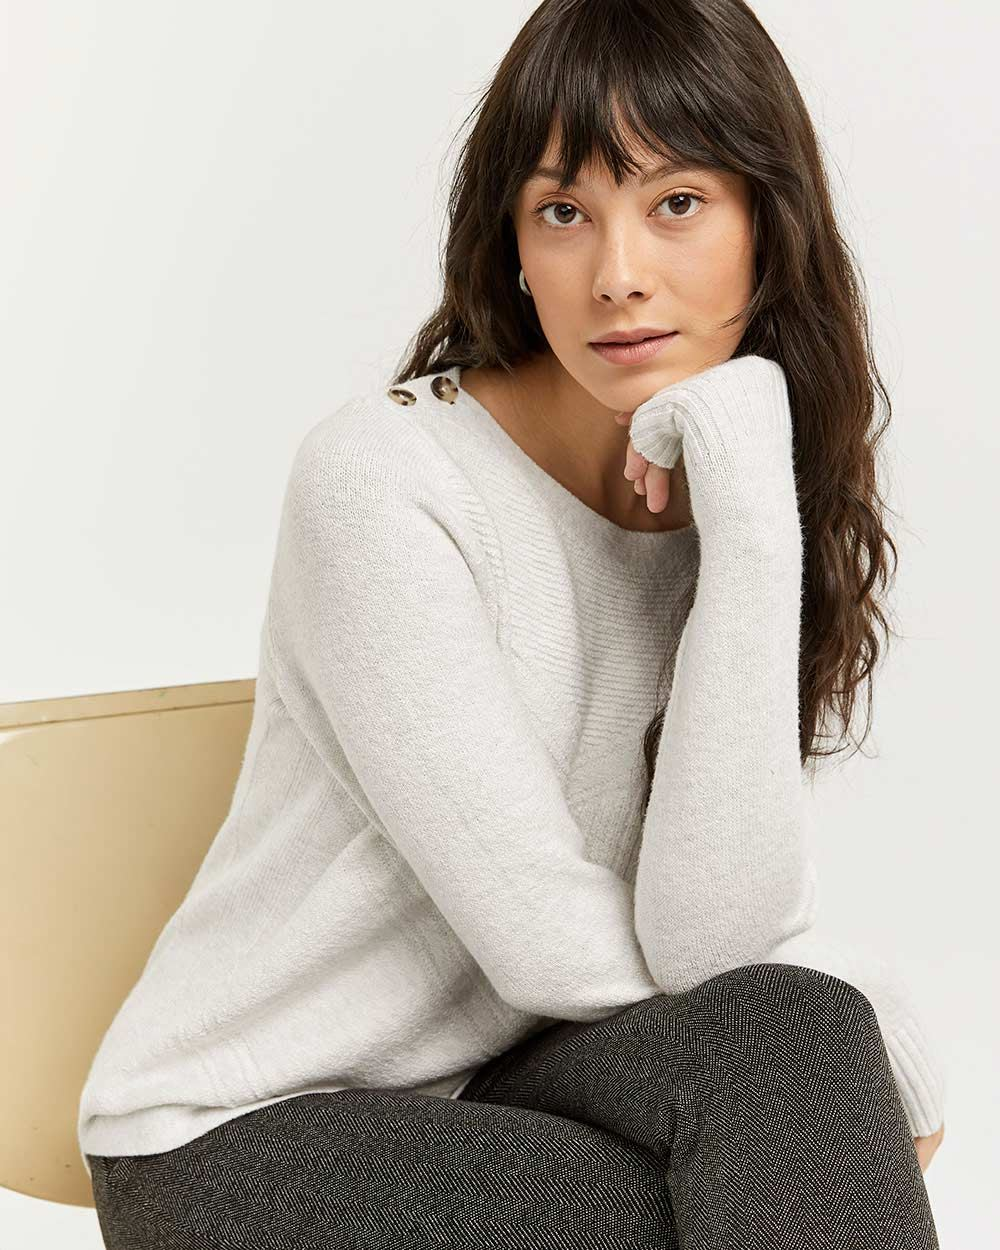 Boat Neck Sweater with Buttons at Shoulders